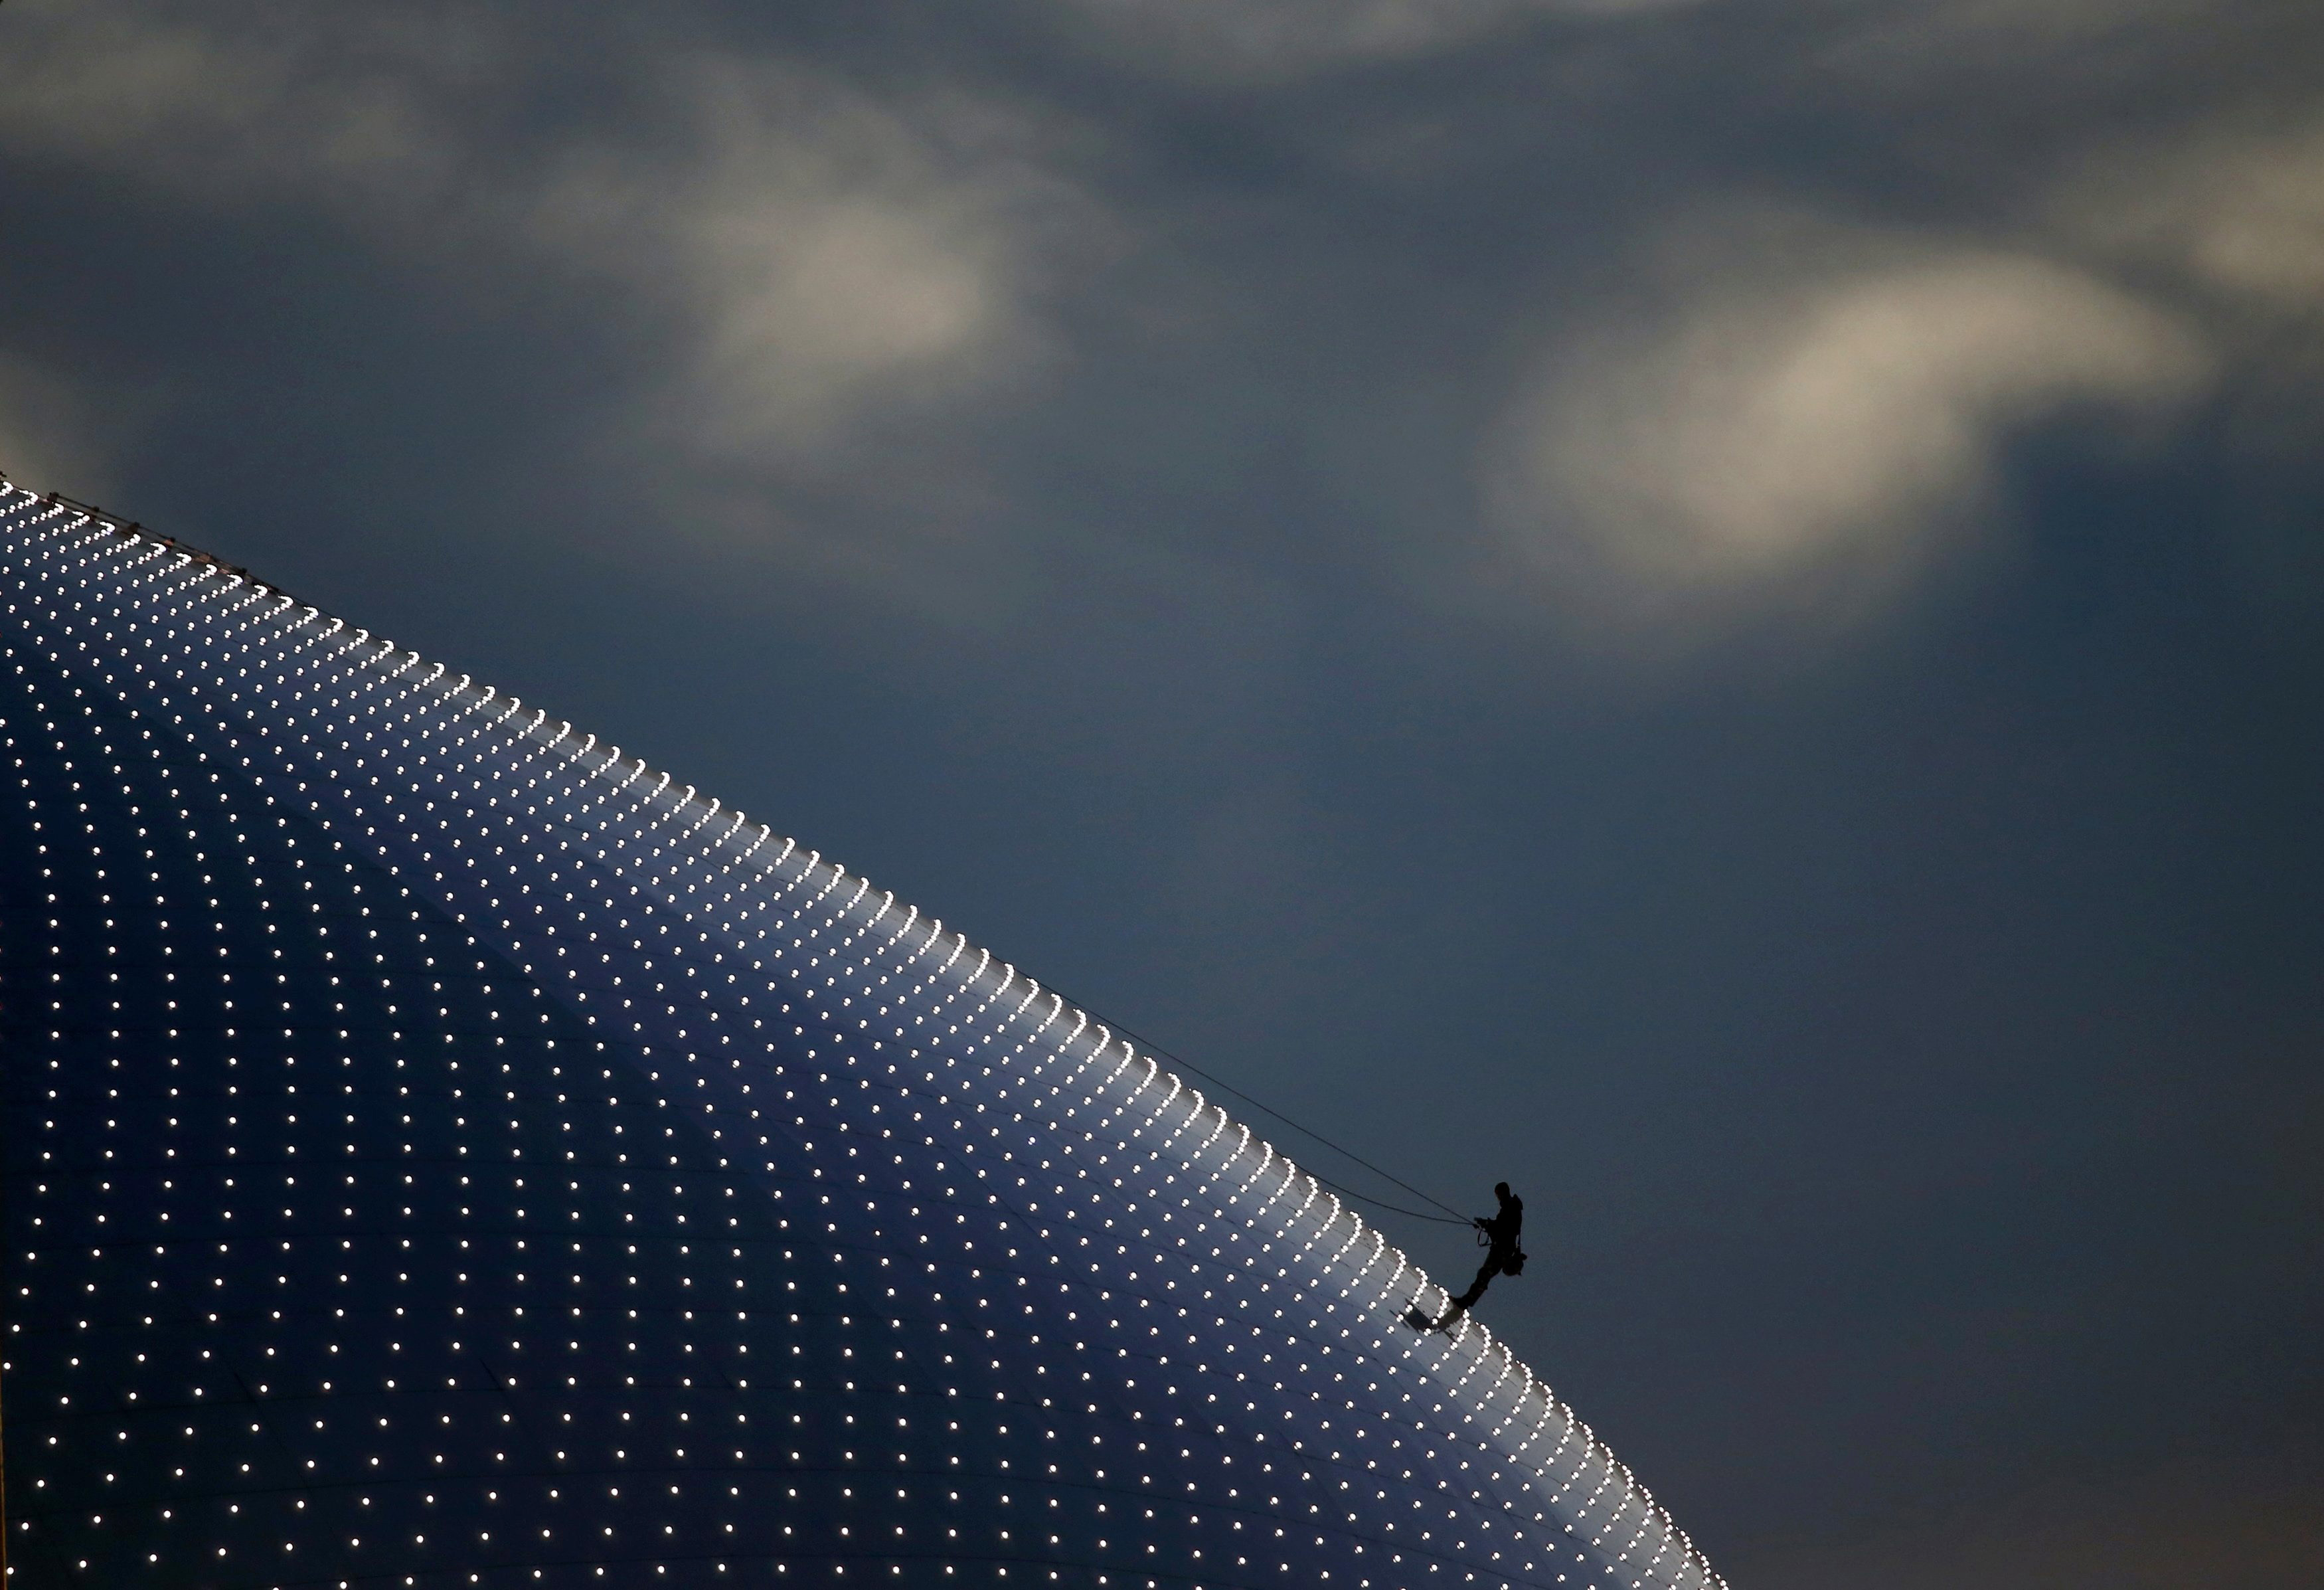 Person climbs on the Bolshoi Dome, one of the ice hockey venues, before the medals ceremony during the 2014 Sochi Winter Olympics...A person climbs on the Bolshoi Dome, one of the ice hockey venues, before the medals ceremony during the 2014 Sochi Winter Olympics February 14, 2014.   REUTERS/Marko Djurica (RUSSIA  - Tags: SPORT OLYMPICS)